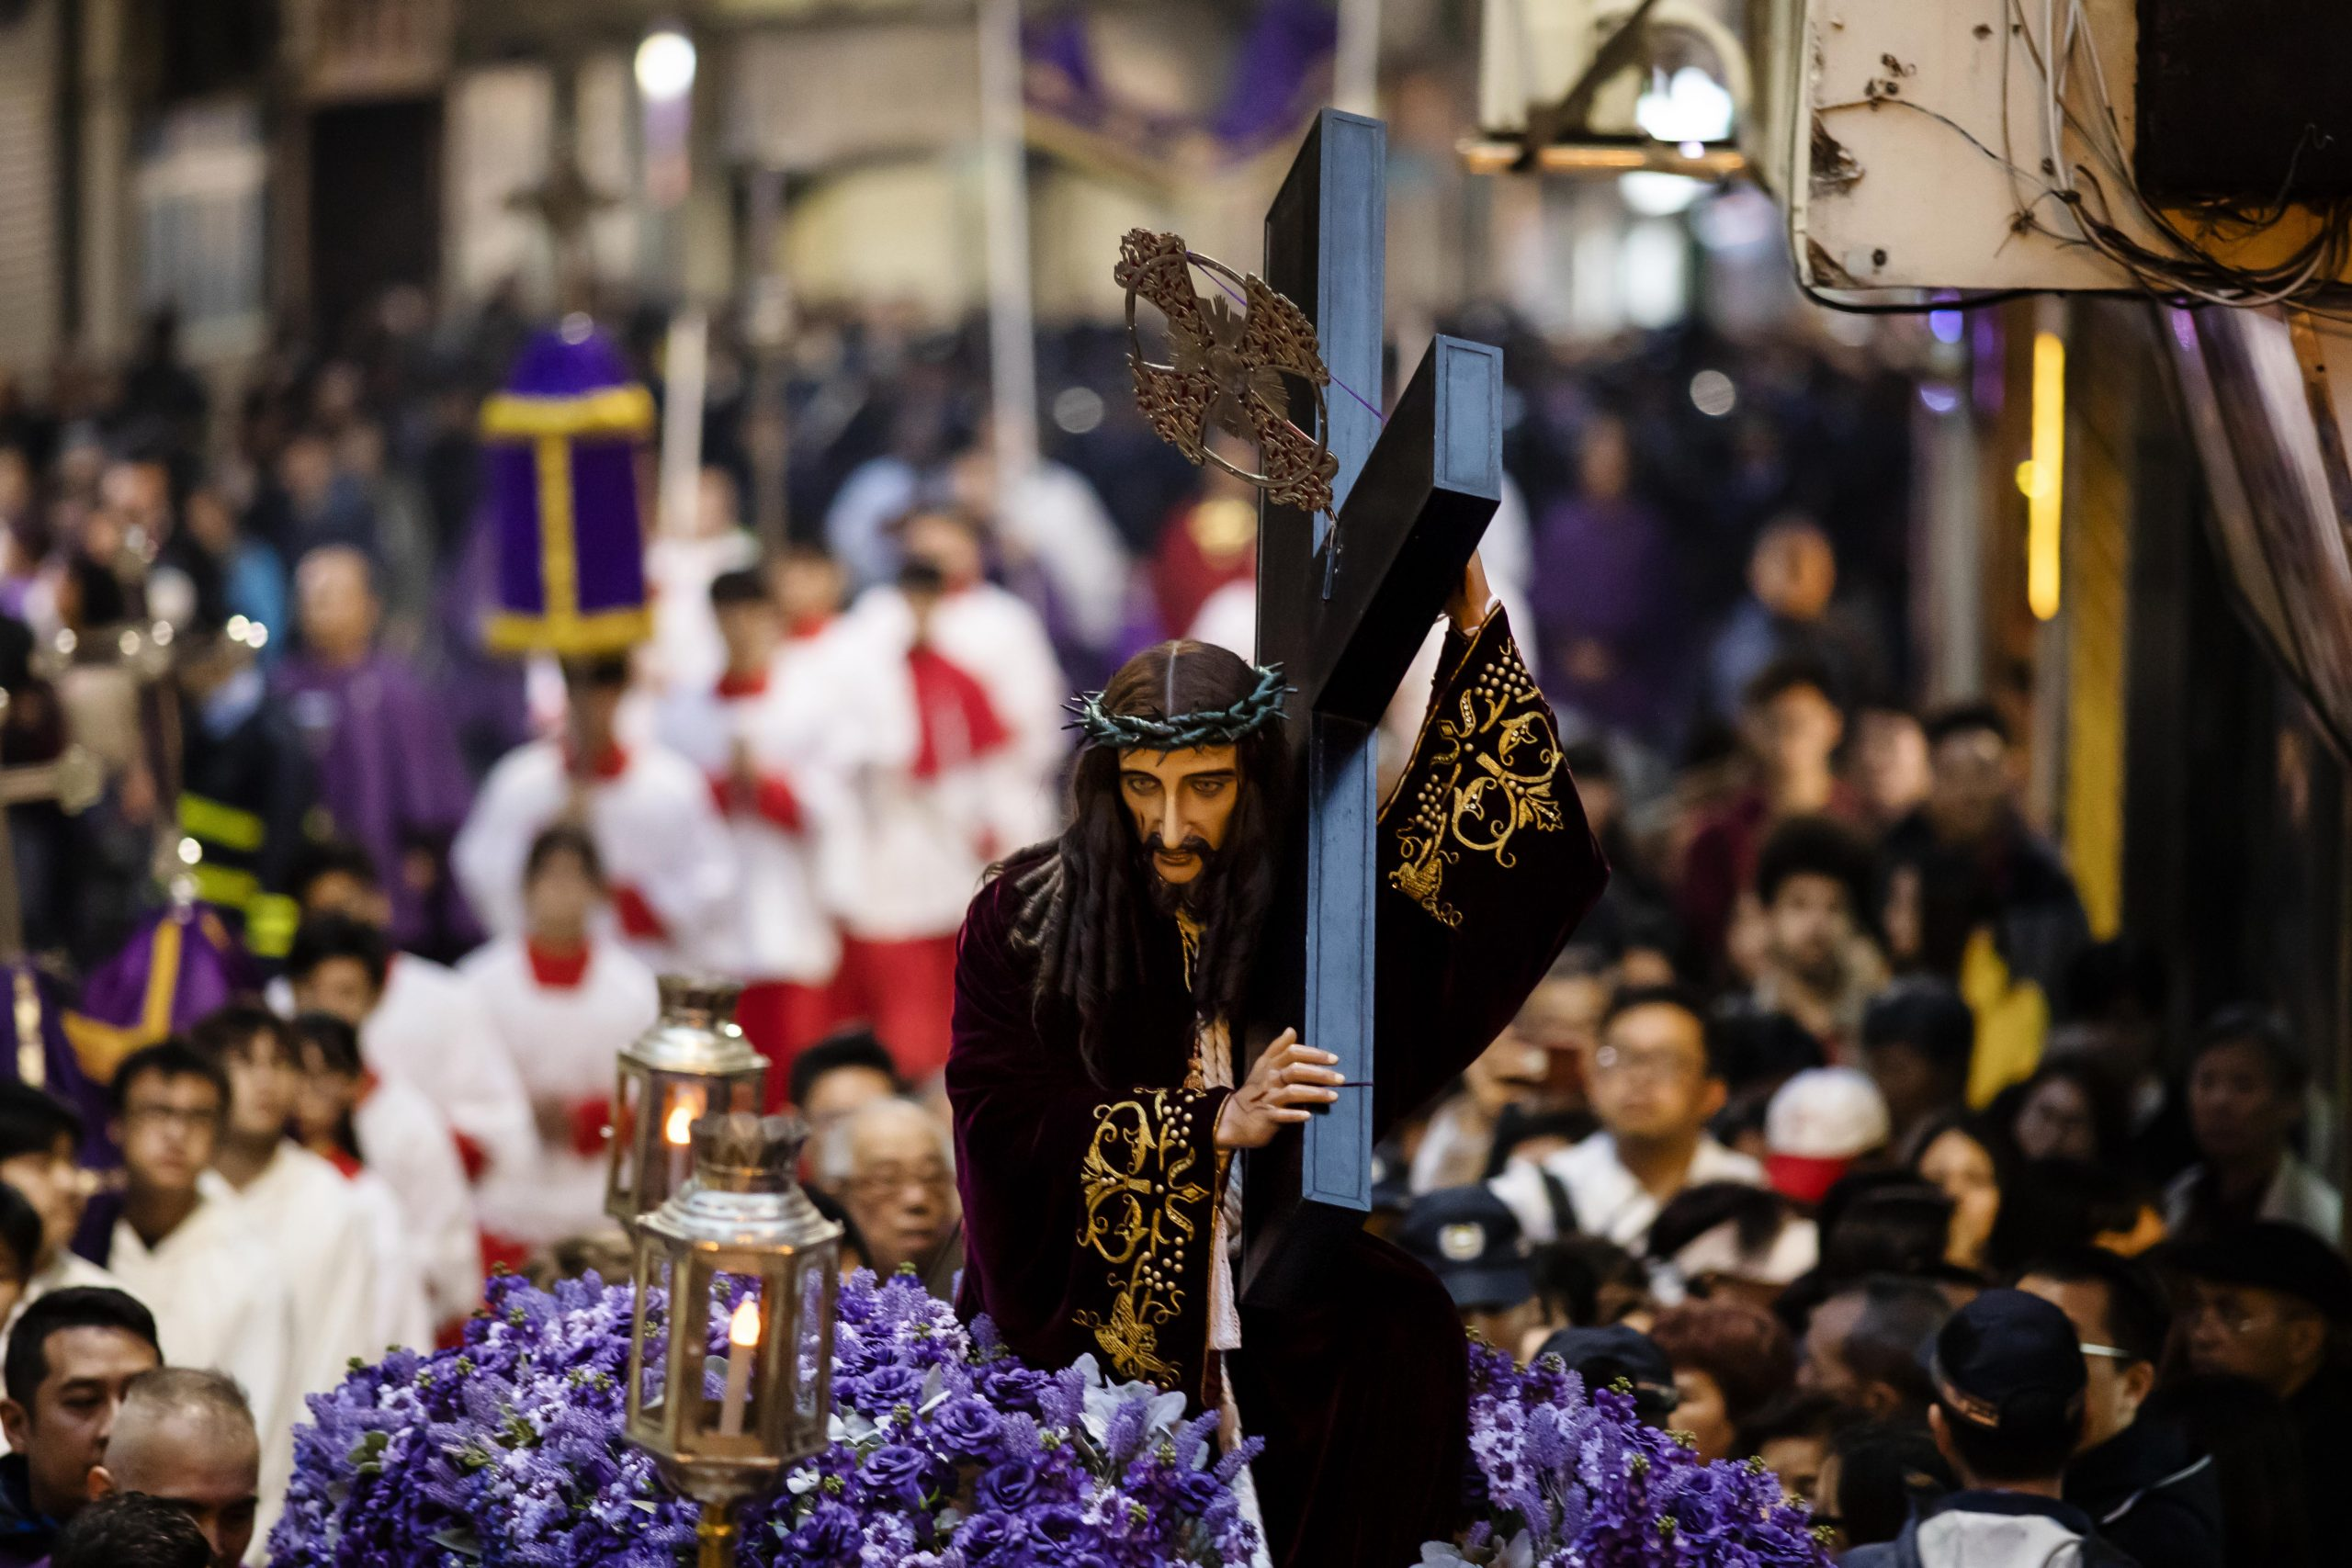 The Procession of the passion of our Lord, the God Jesus, has also been on the inventory for the past three years - Photo by Eduardo Martins